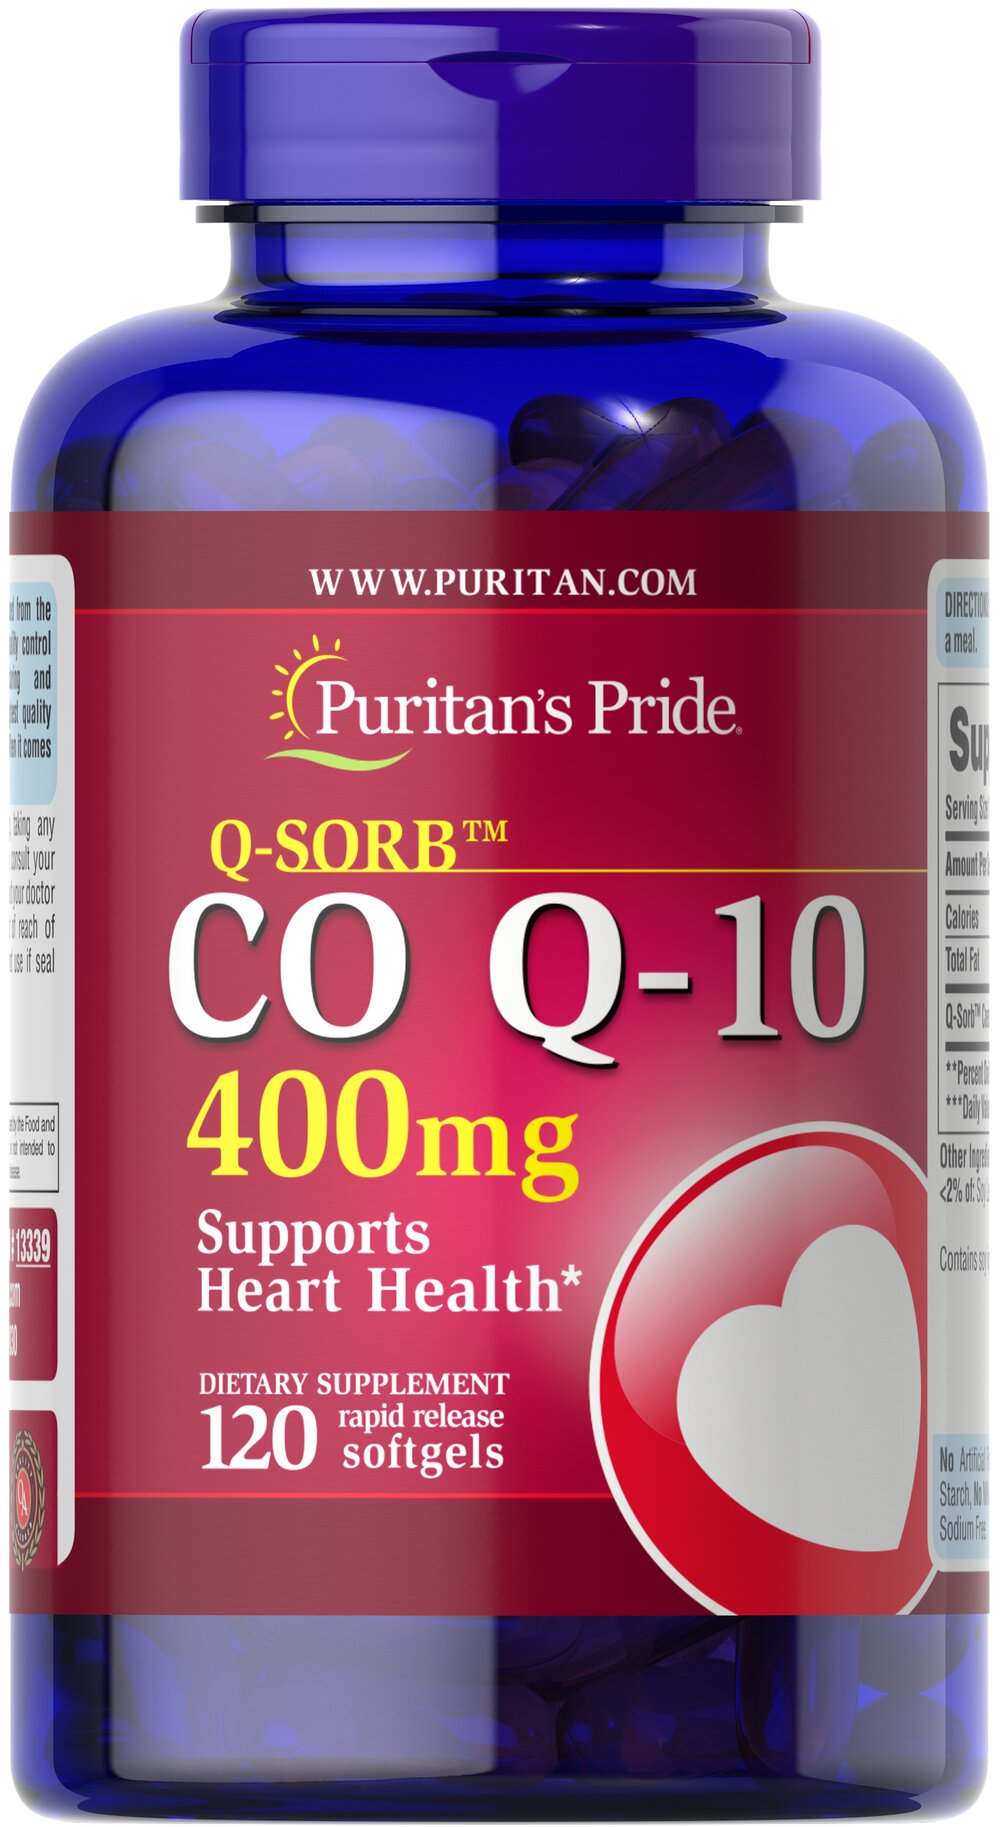 Q-Sorb™ CO Q-10 400 mg <p>Puritan's Pride Q-Sorb™ Co Q-10 (coq10) provides antioxidant support for your heart and ensures potency and purity.**</p><p>Our Q-Sorb™ Co Q-10 is hermetically sealed in rapid release softgels to provide superior absorption</p><p>Contributes to your heart and cardiovascular wellness**</p><p>Helps support blood pressure levels already within a normal range**</p><p>Promotes energy production within your heart, brain, a